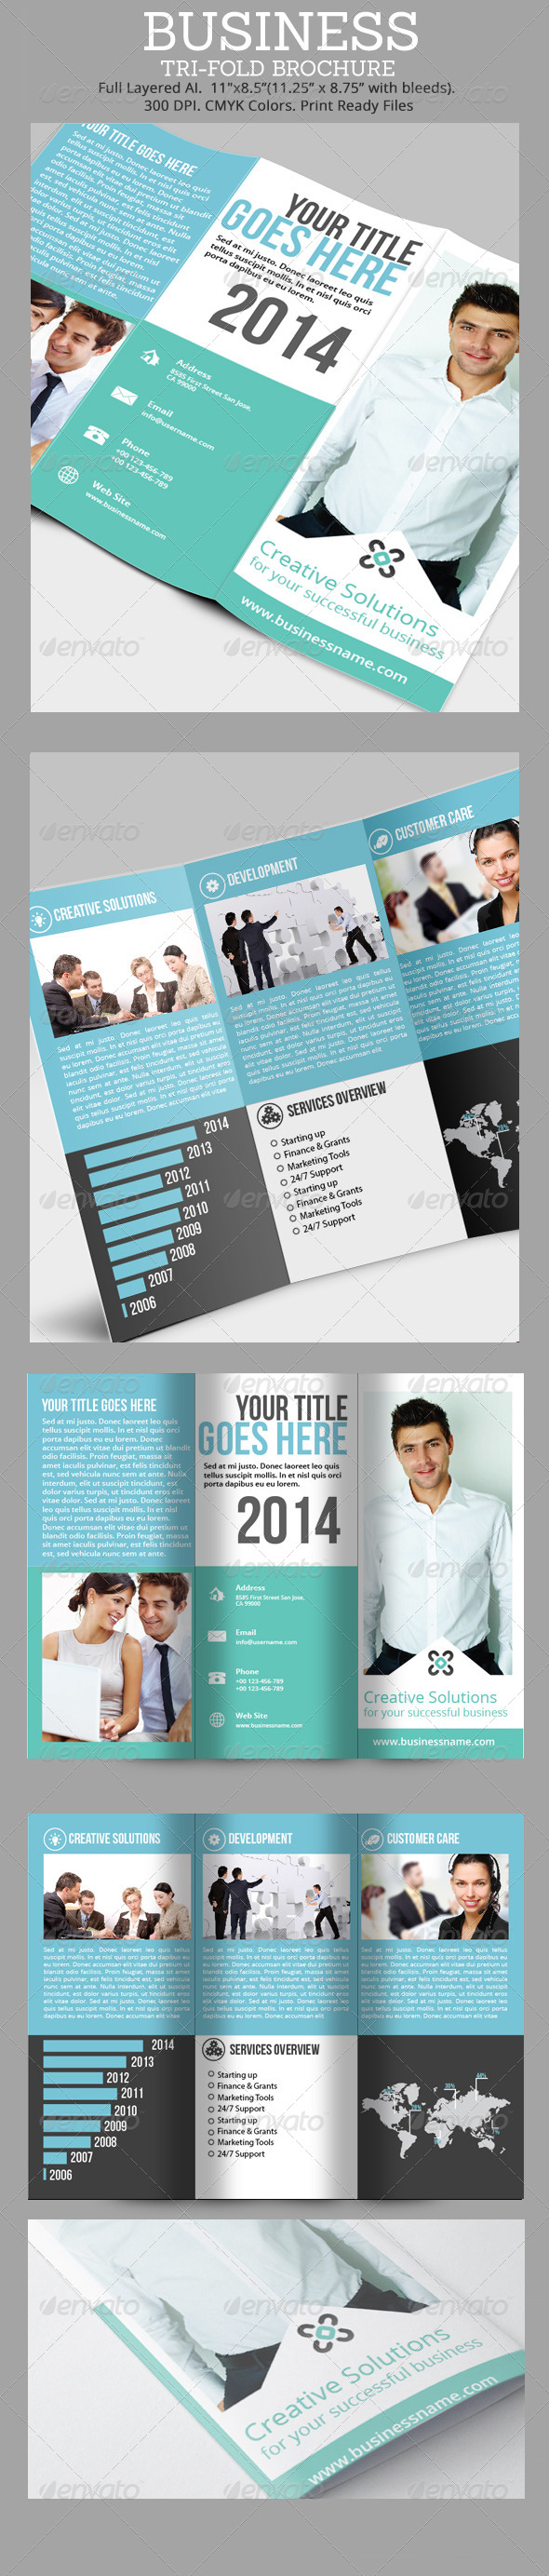 Simple Business Tri-Fold Brochure